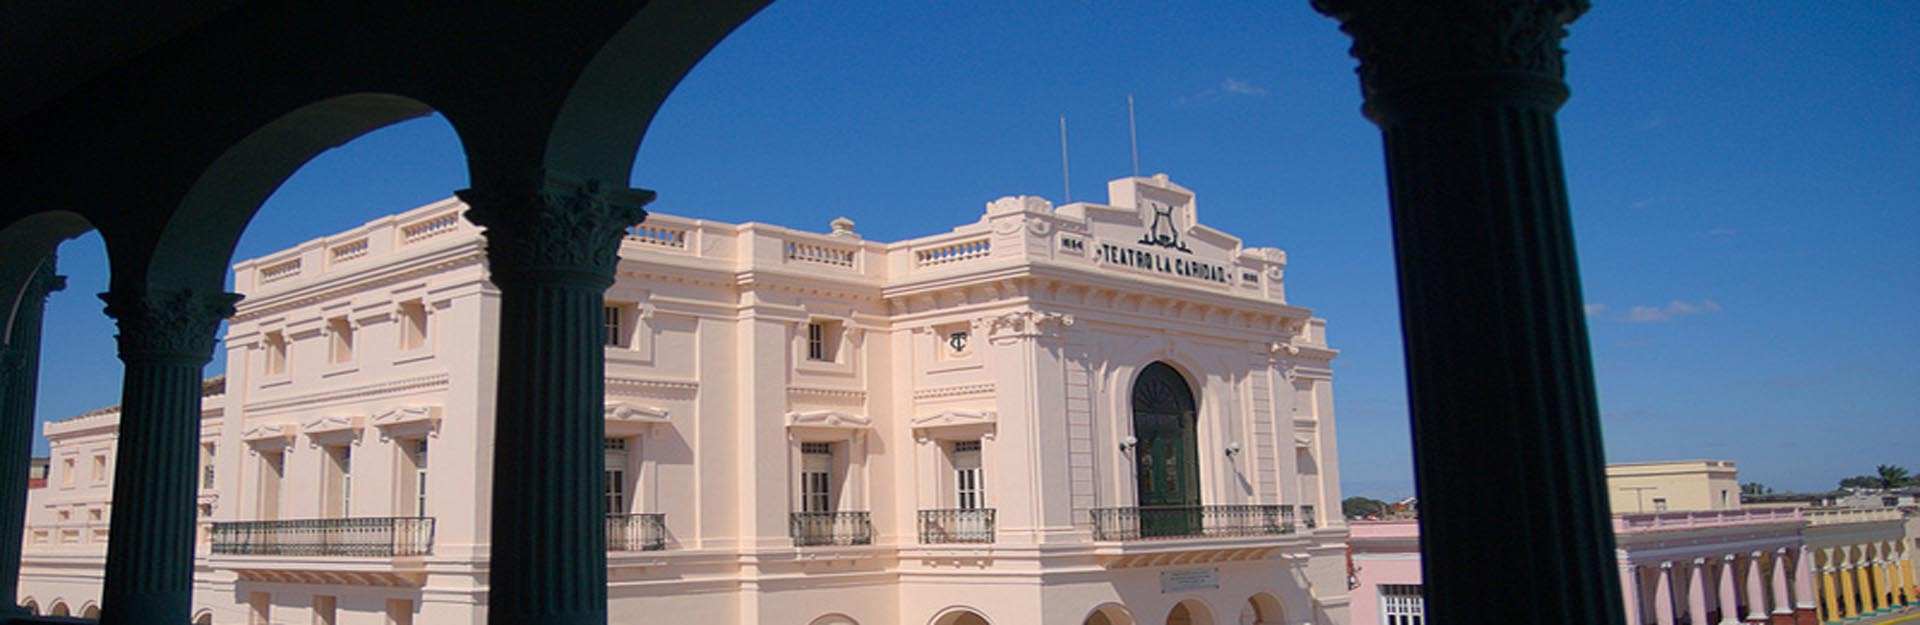 La Caridad Theater, city of Santa Clara.